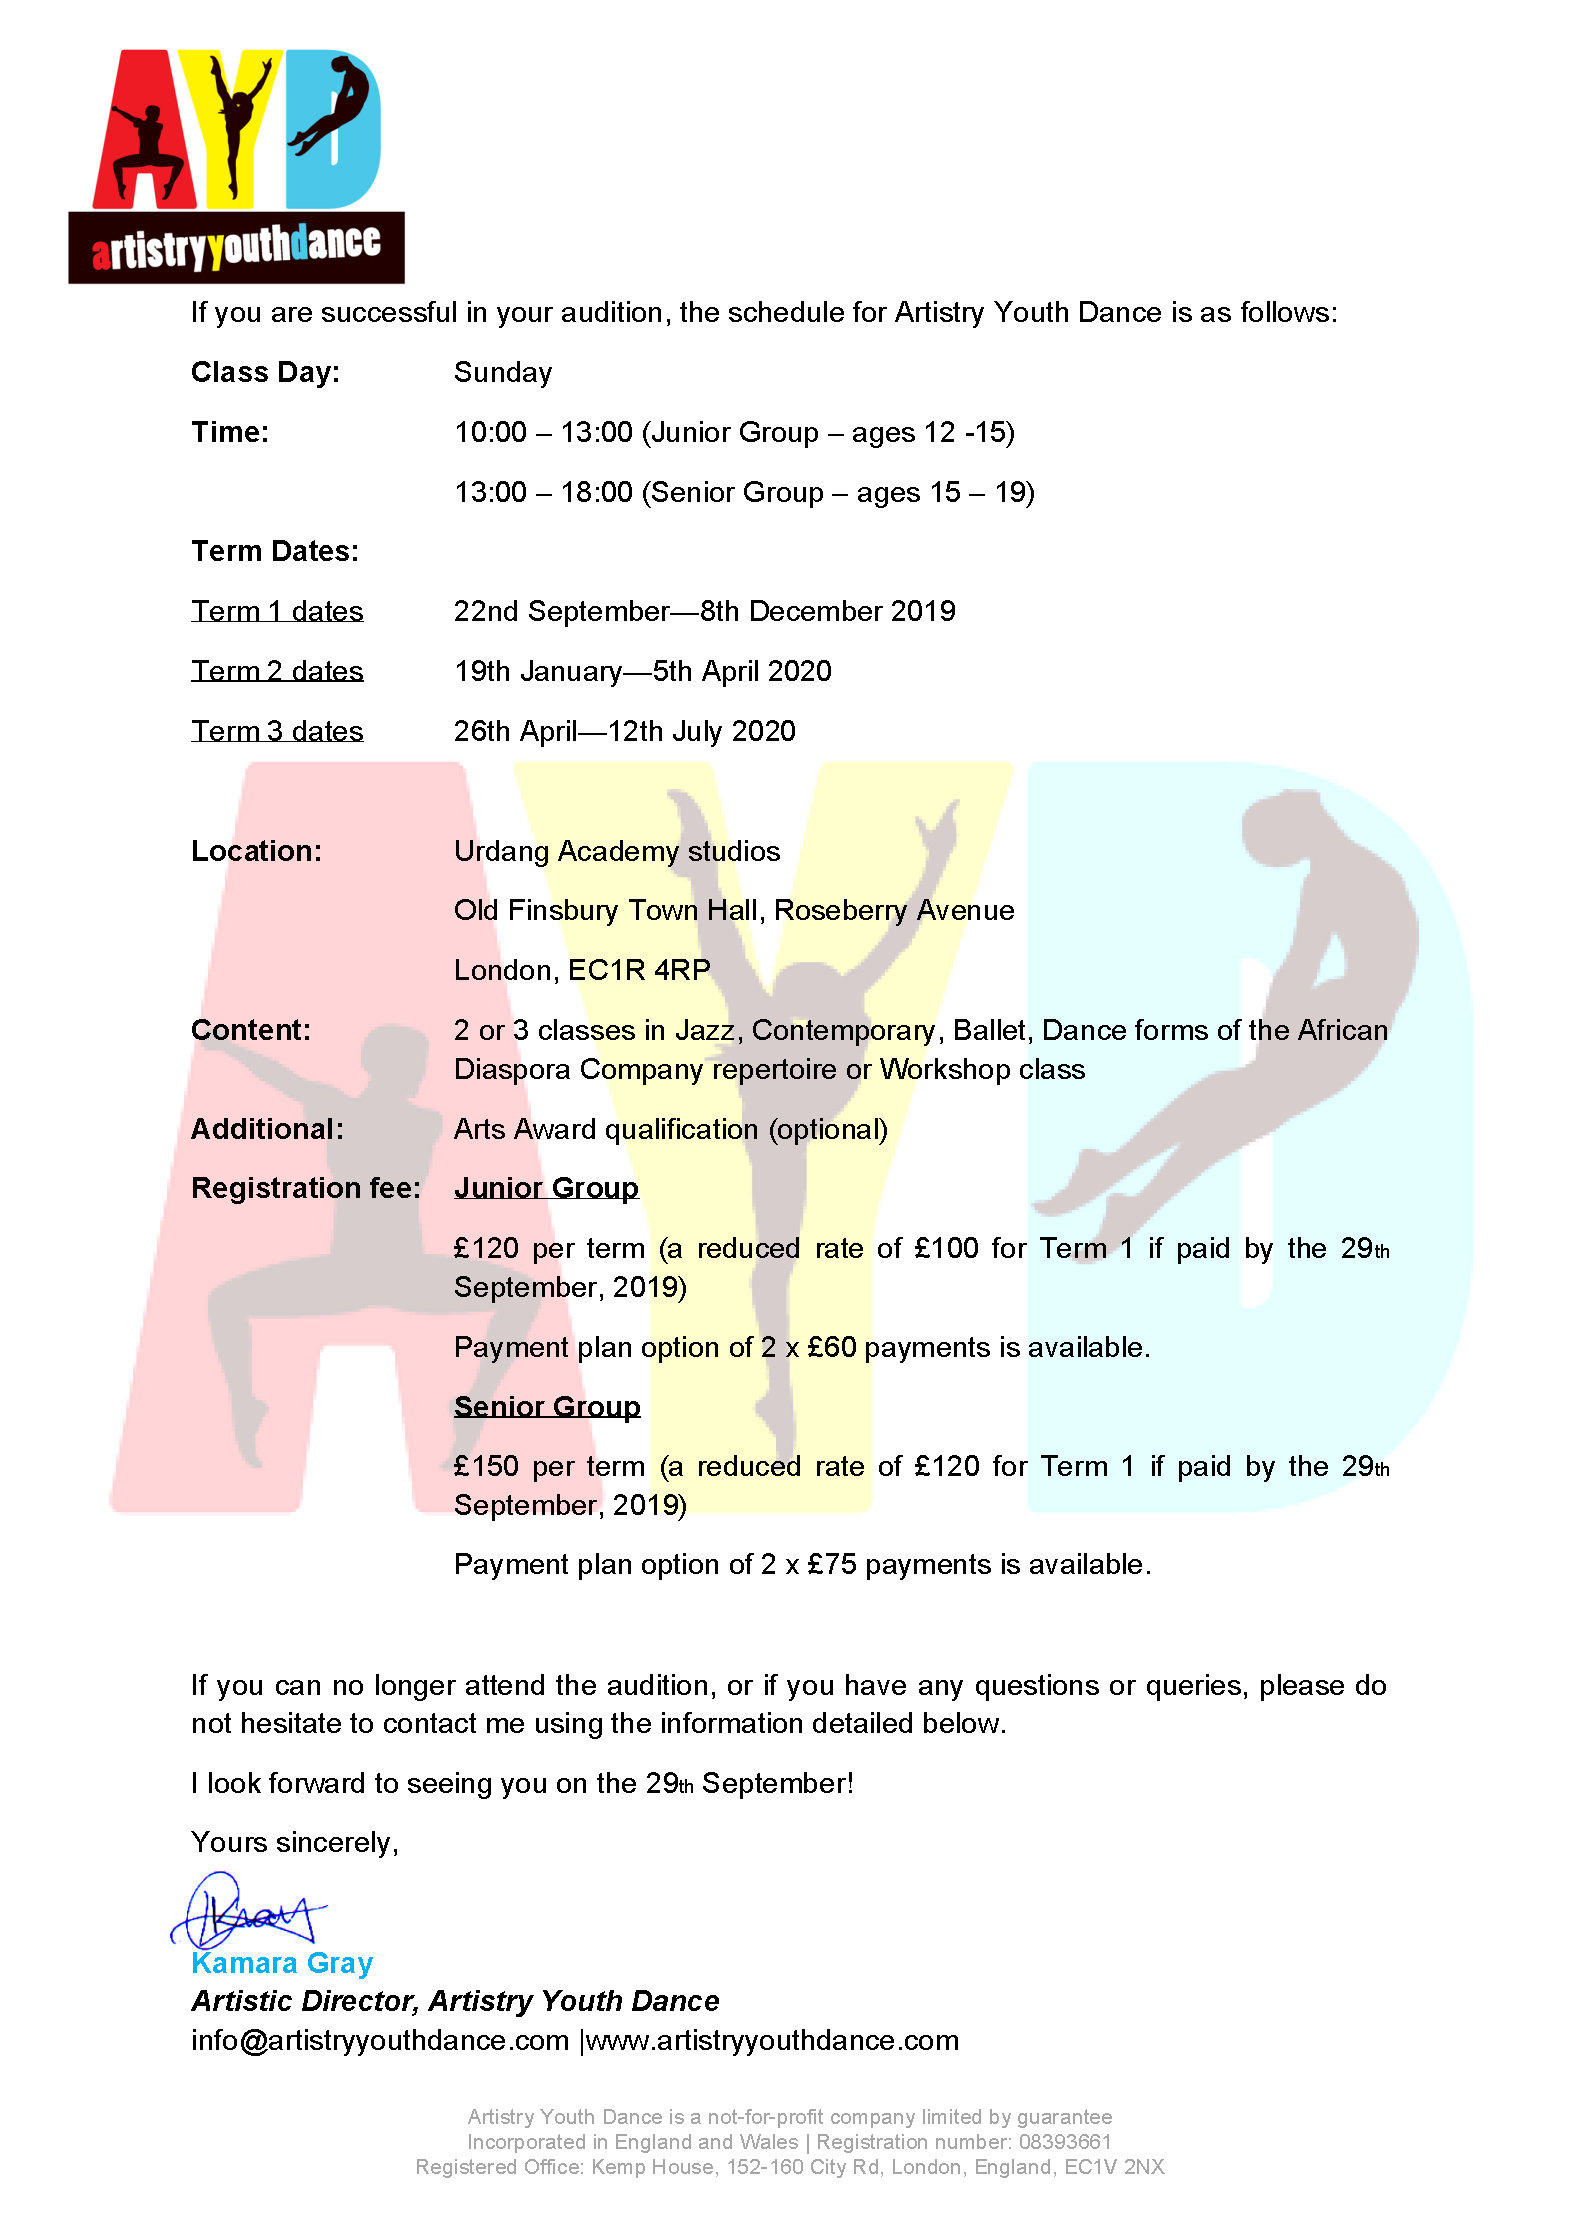 Artistry Youth Dance Audition Information - 29 Sept_Page_2.png